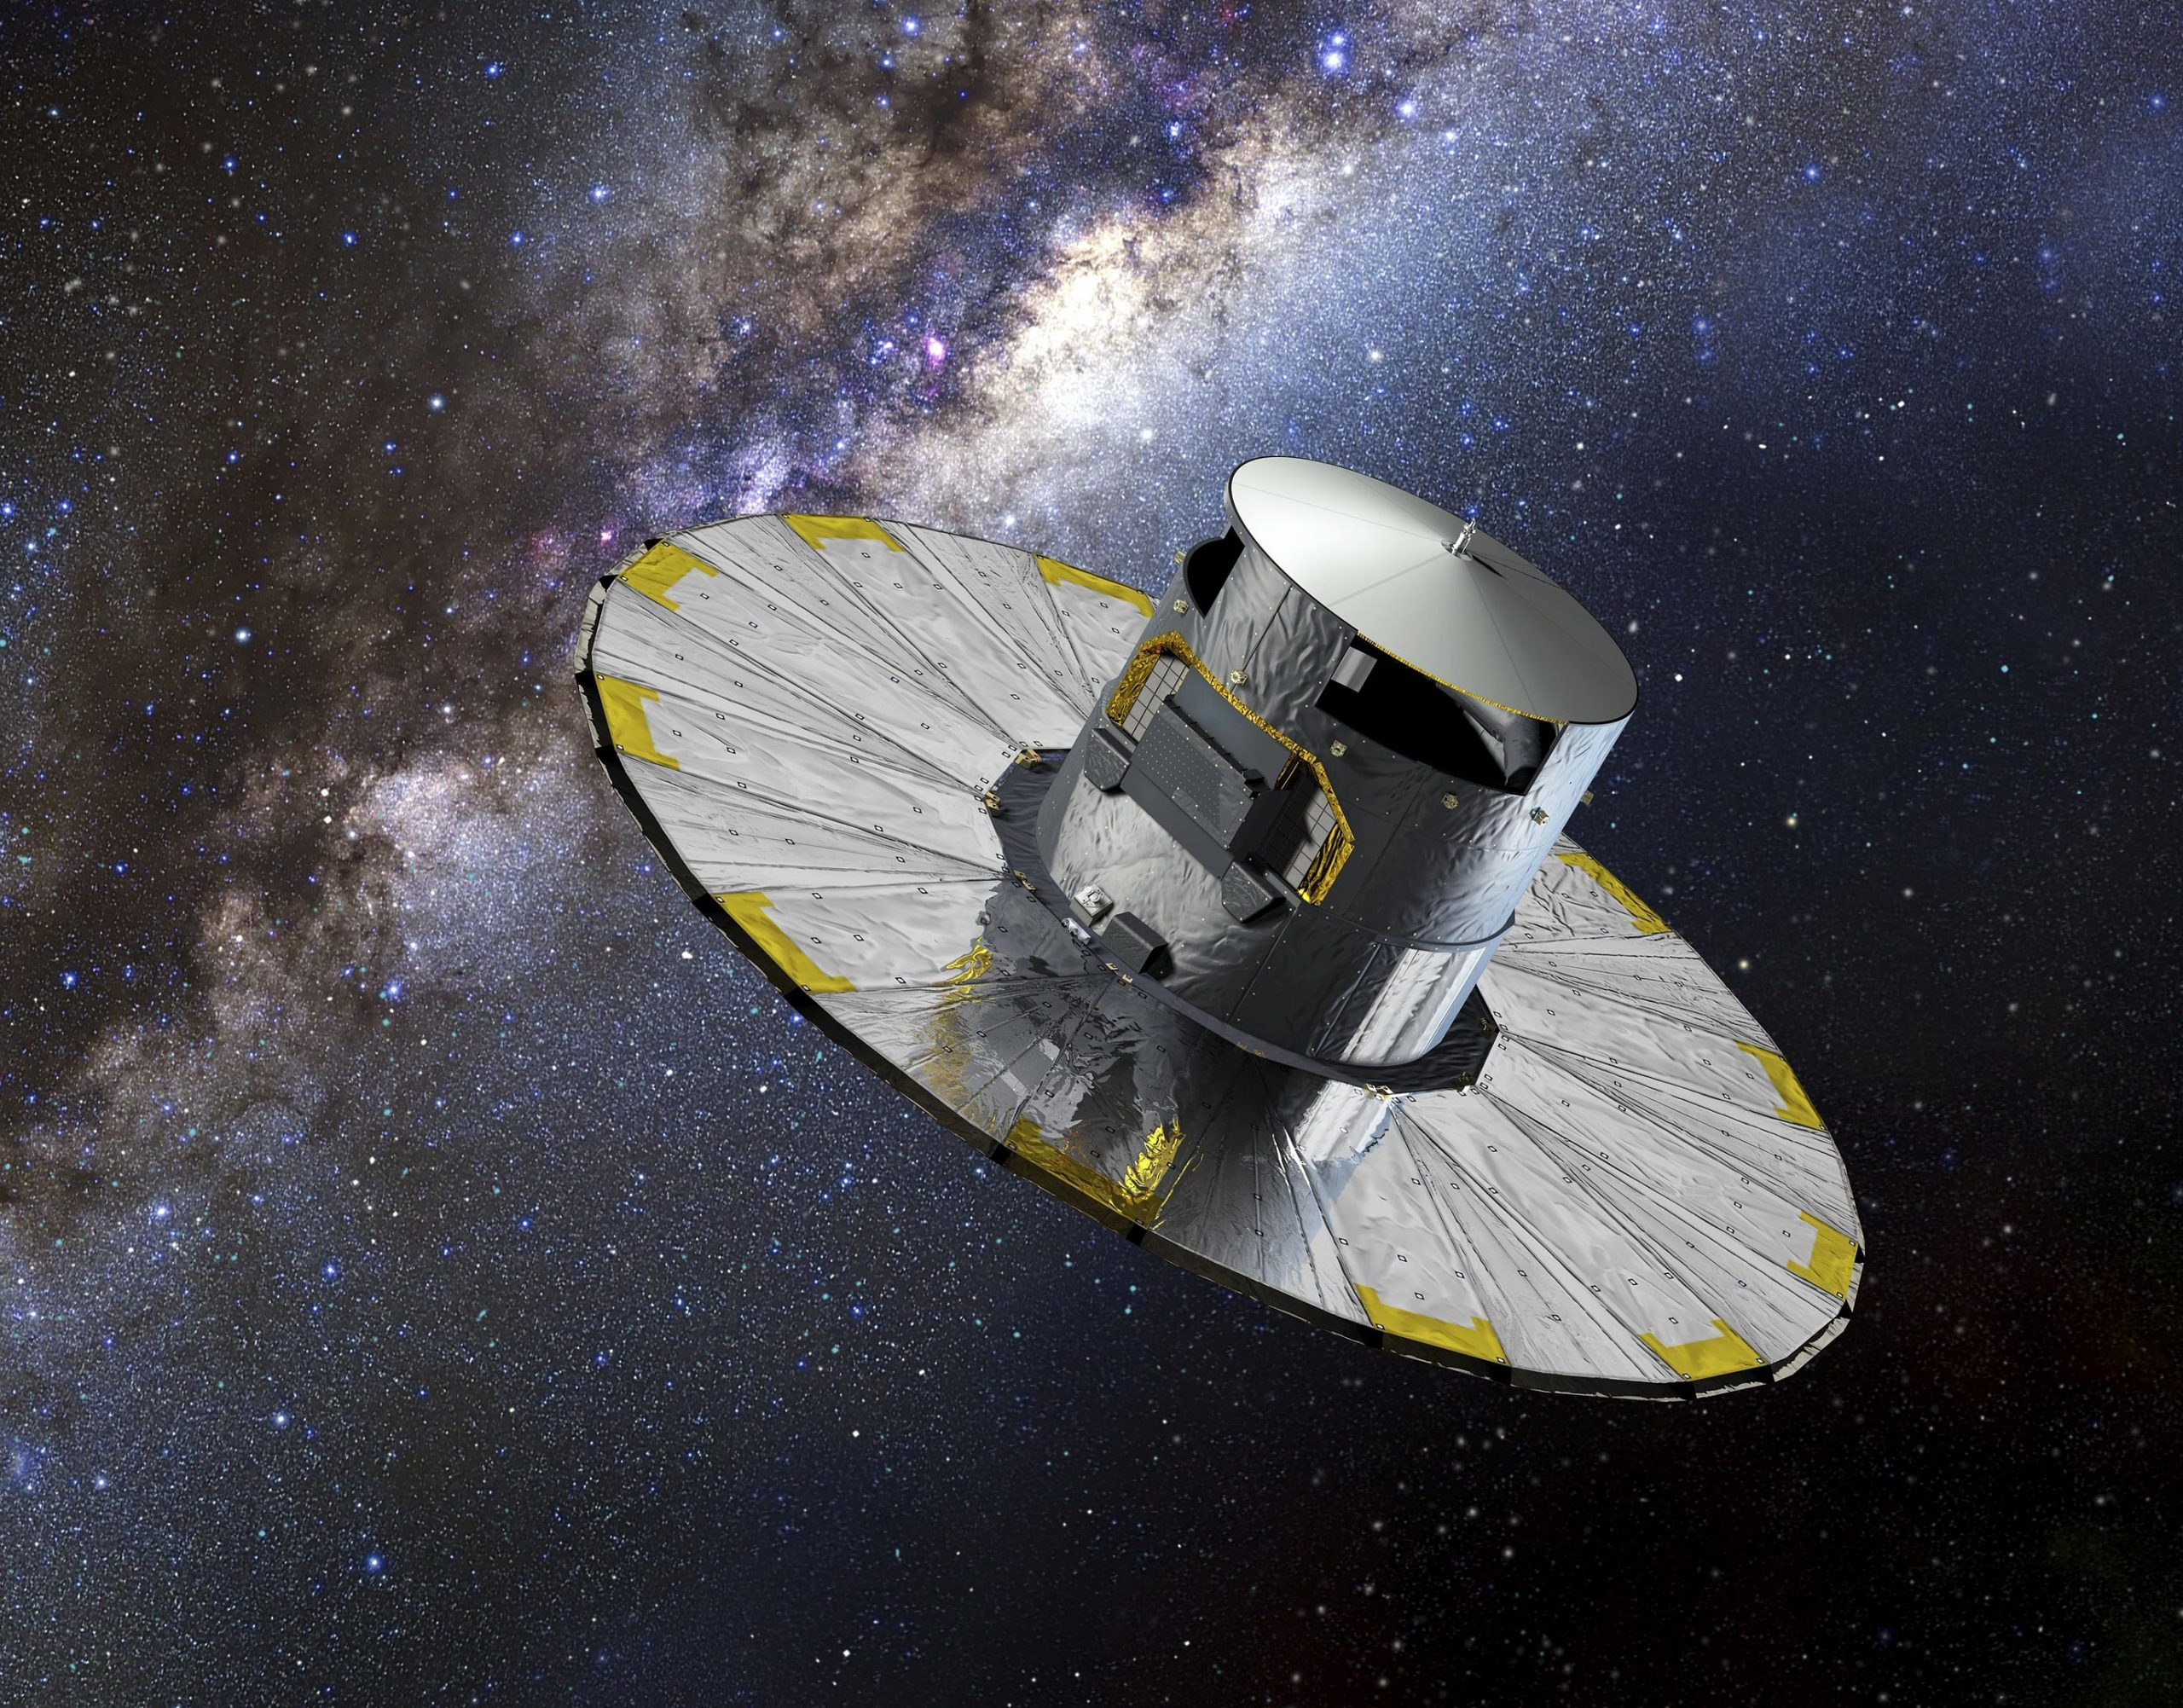 Gaia Spacecraft Artists Impression scaled.'